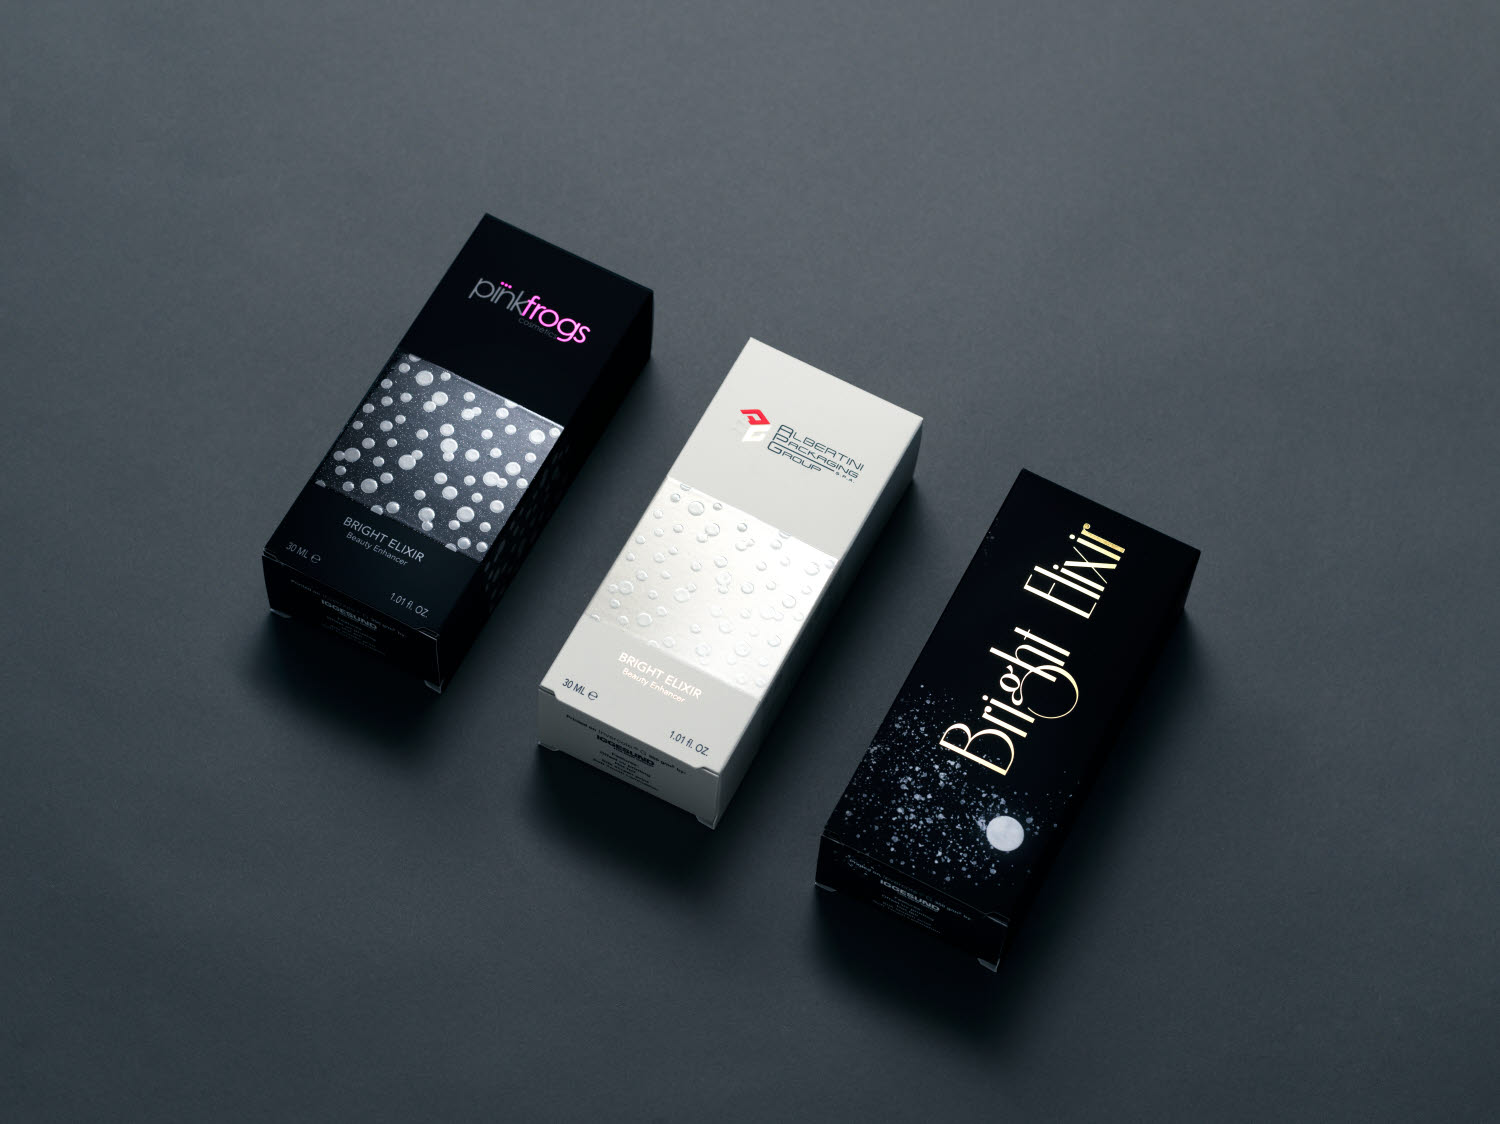 cadeaux luxe packaging on invercote with uv-print